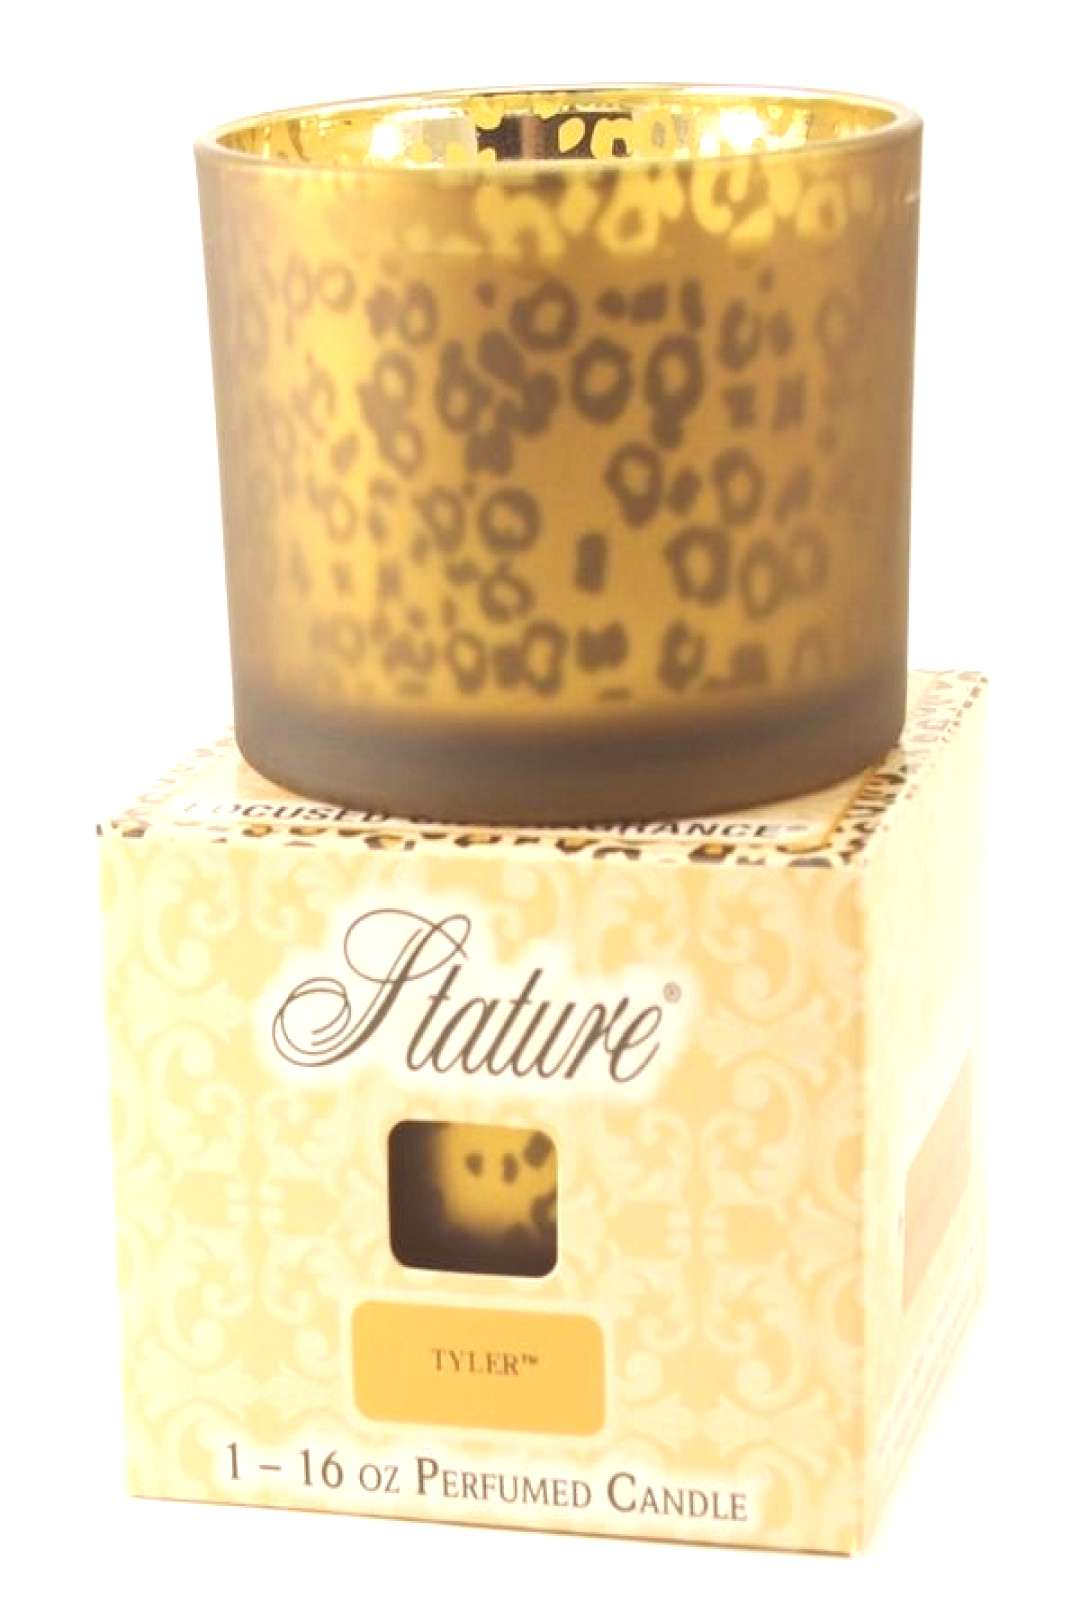 Tyler Candle Stature Collection Leopard 16 oz Candle - Diva – Giddy Up Glamour Boutique